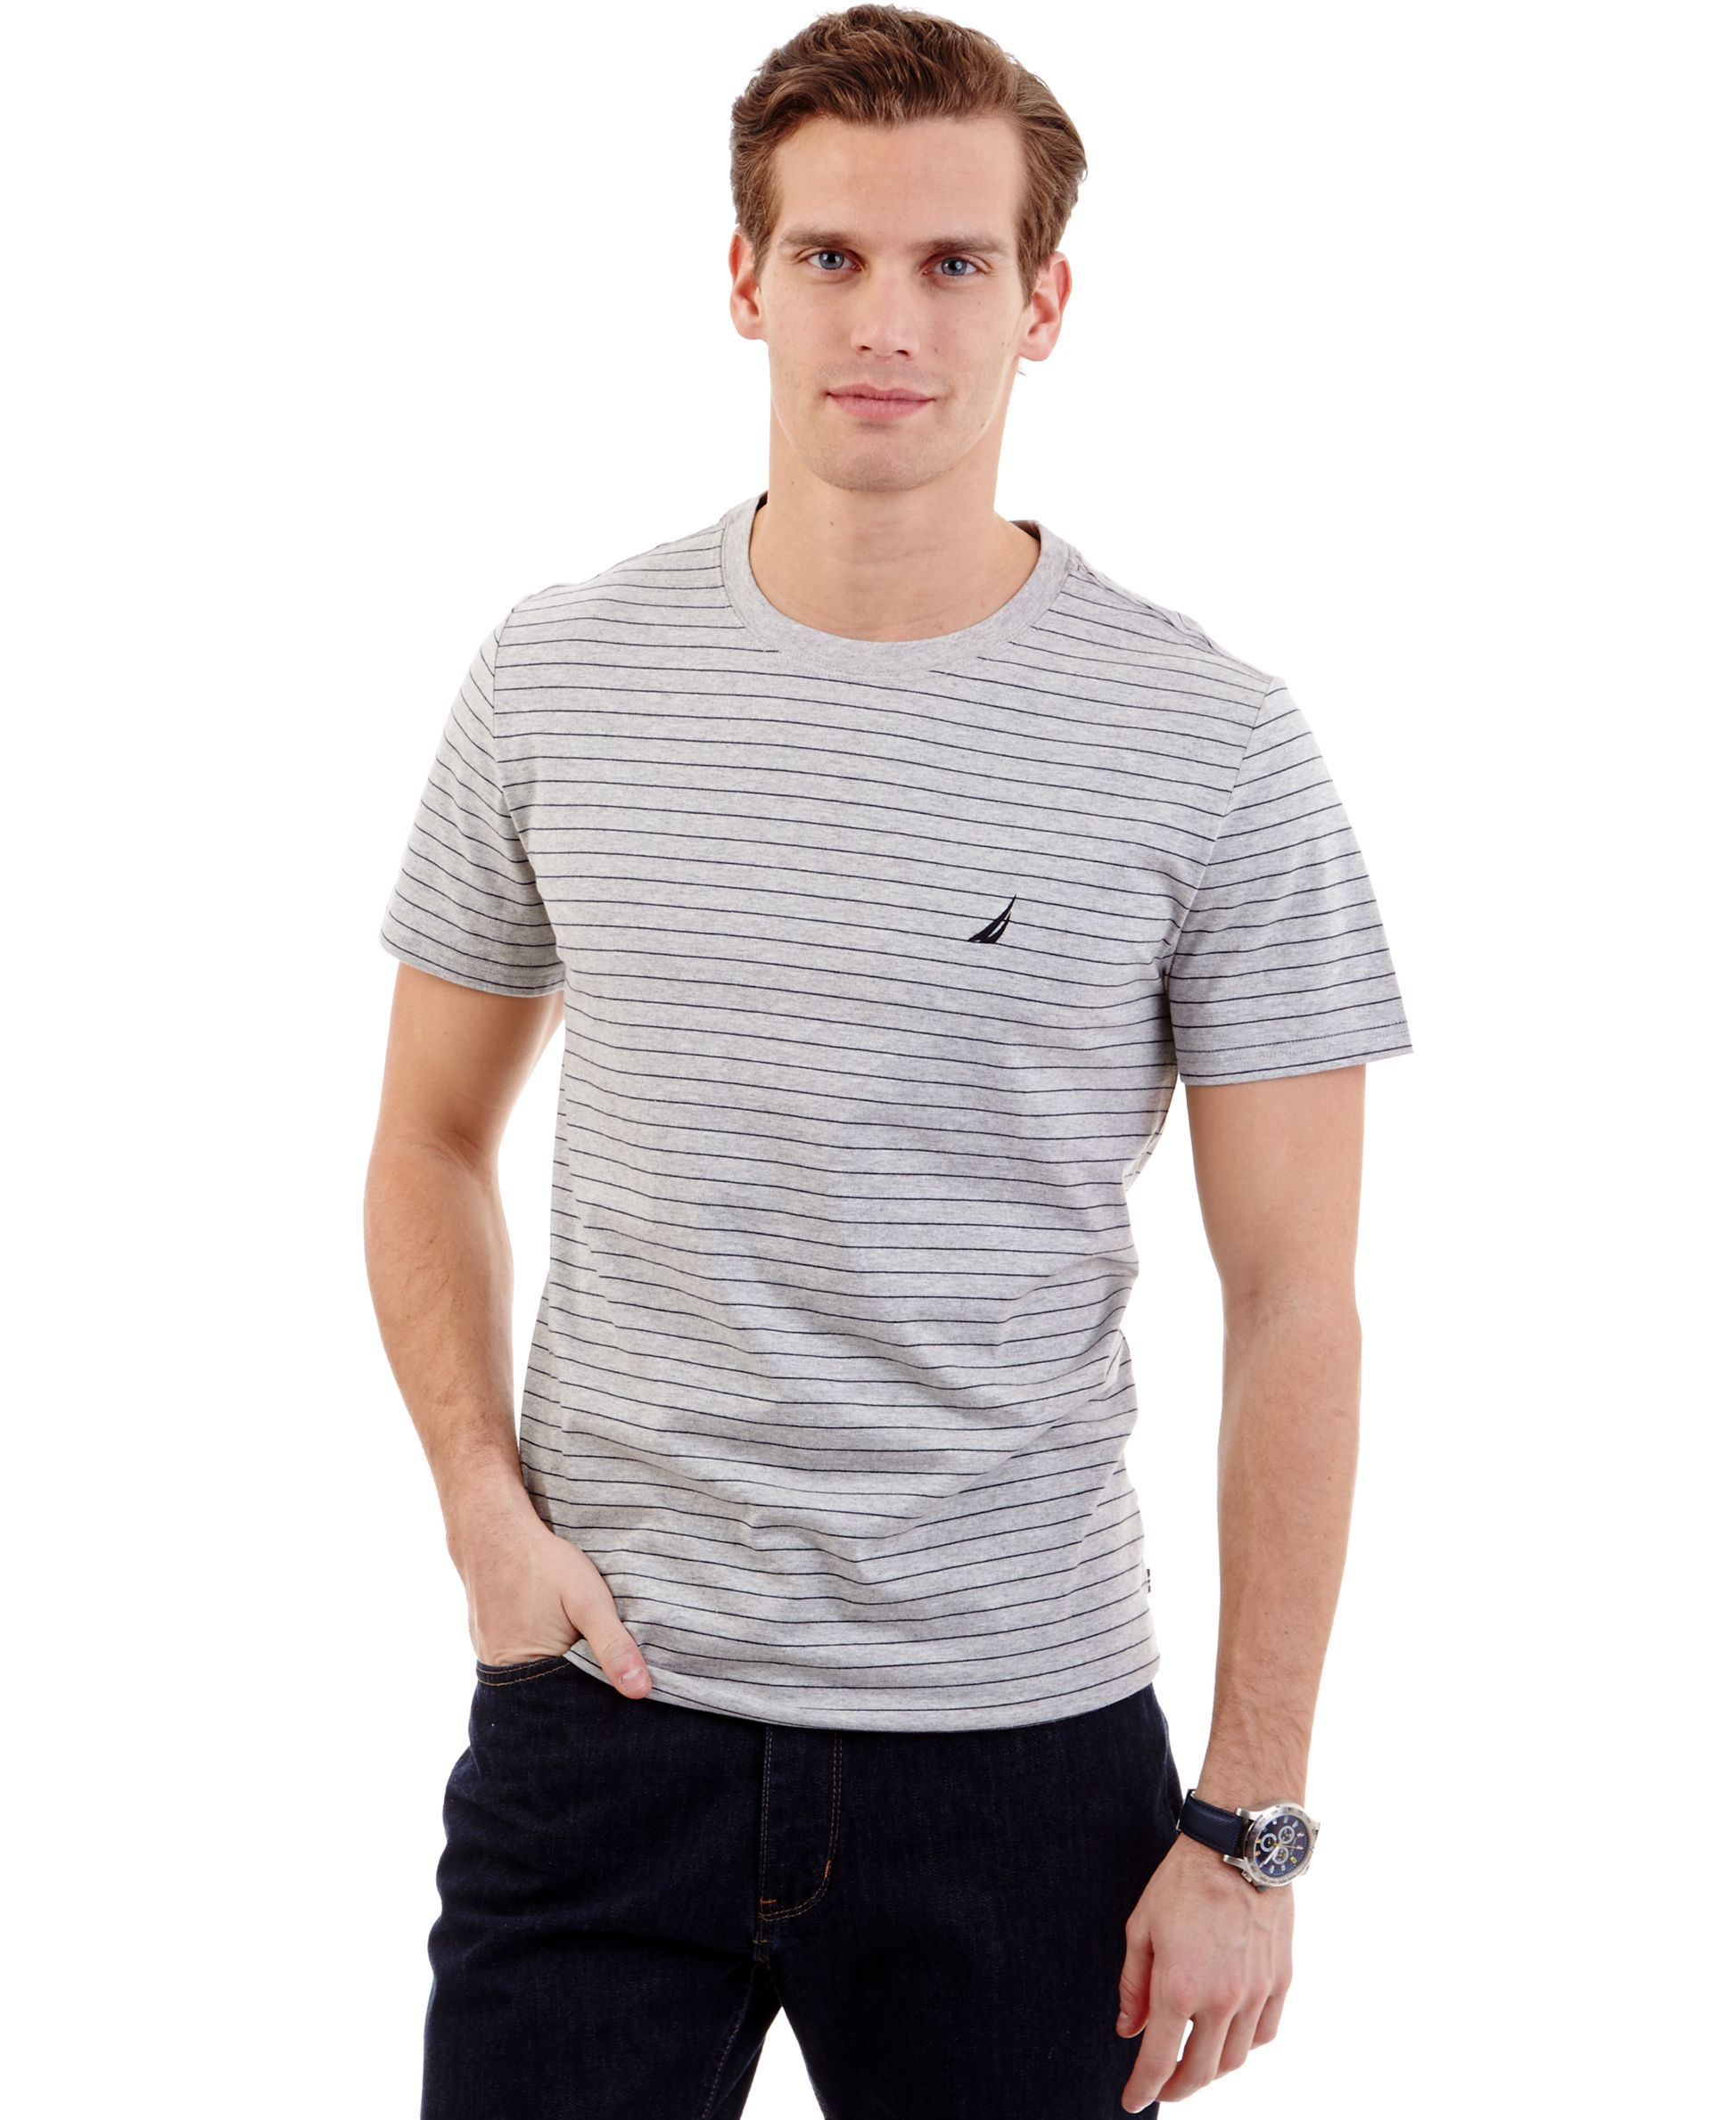 b5e85e667d Nautica Striped Crew-Neck T-Shirt | Products | Shirts, T shirt, Crew ...